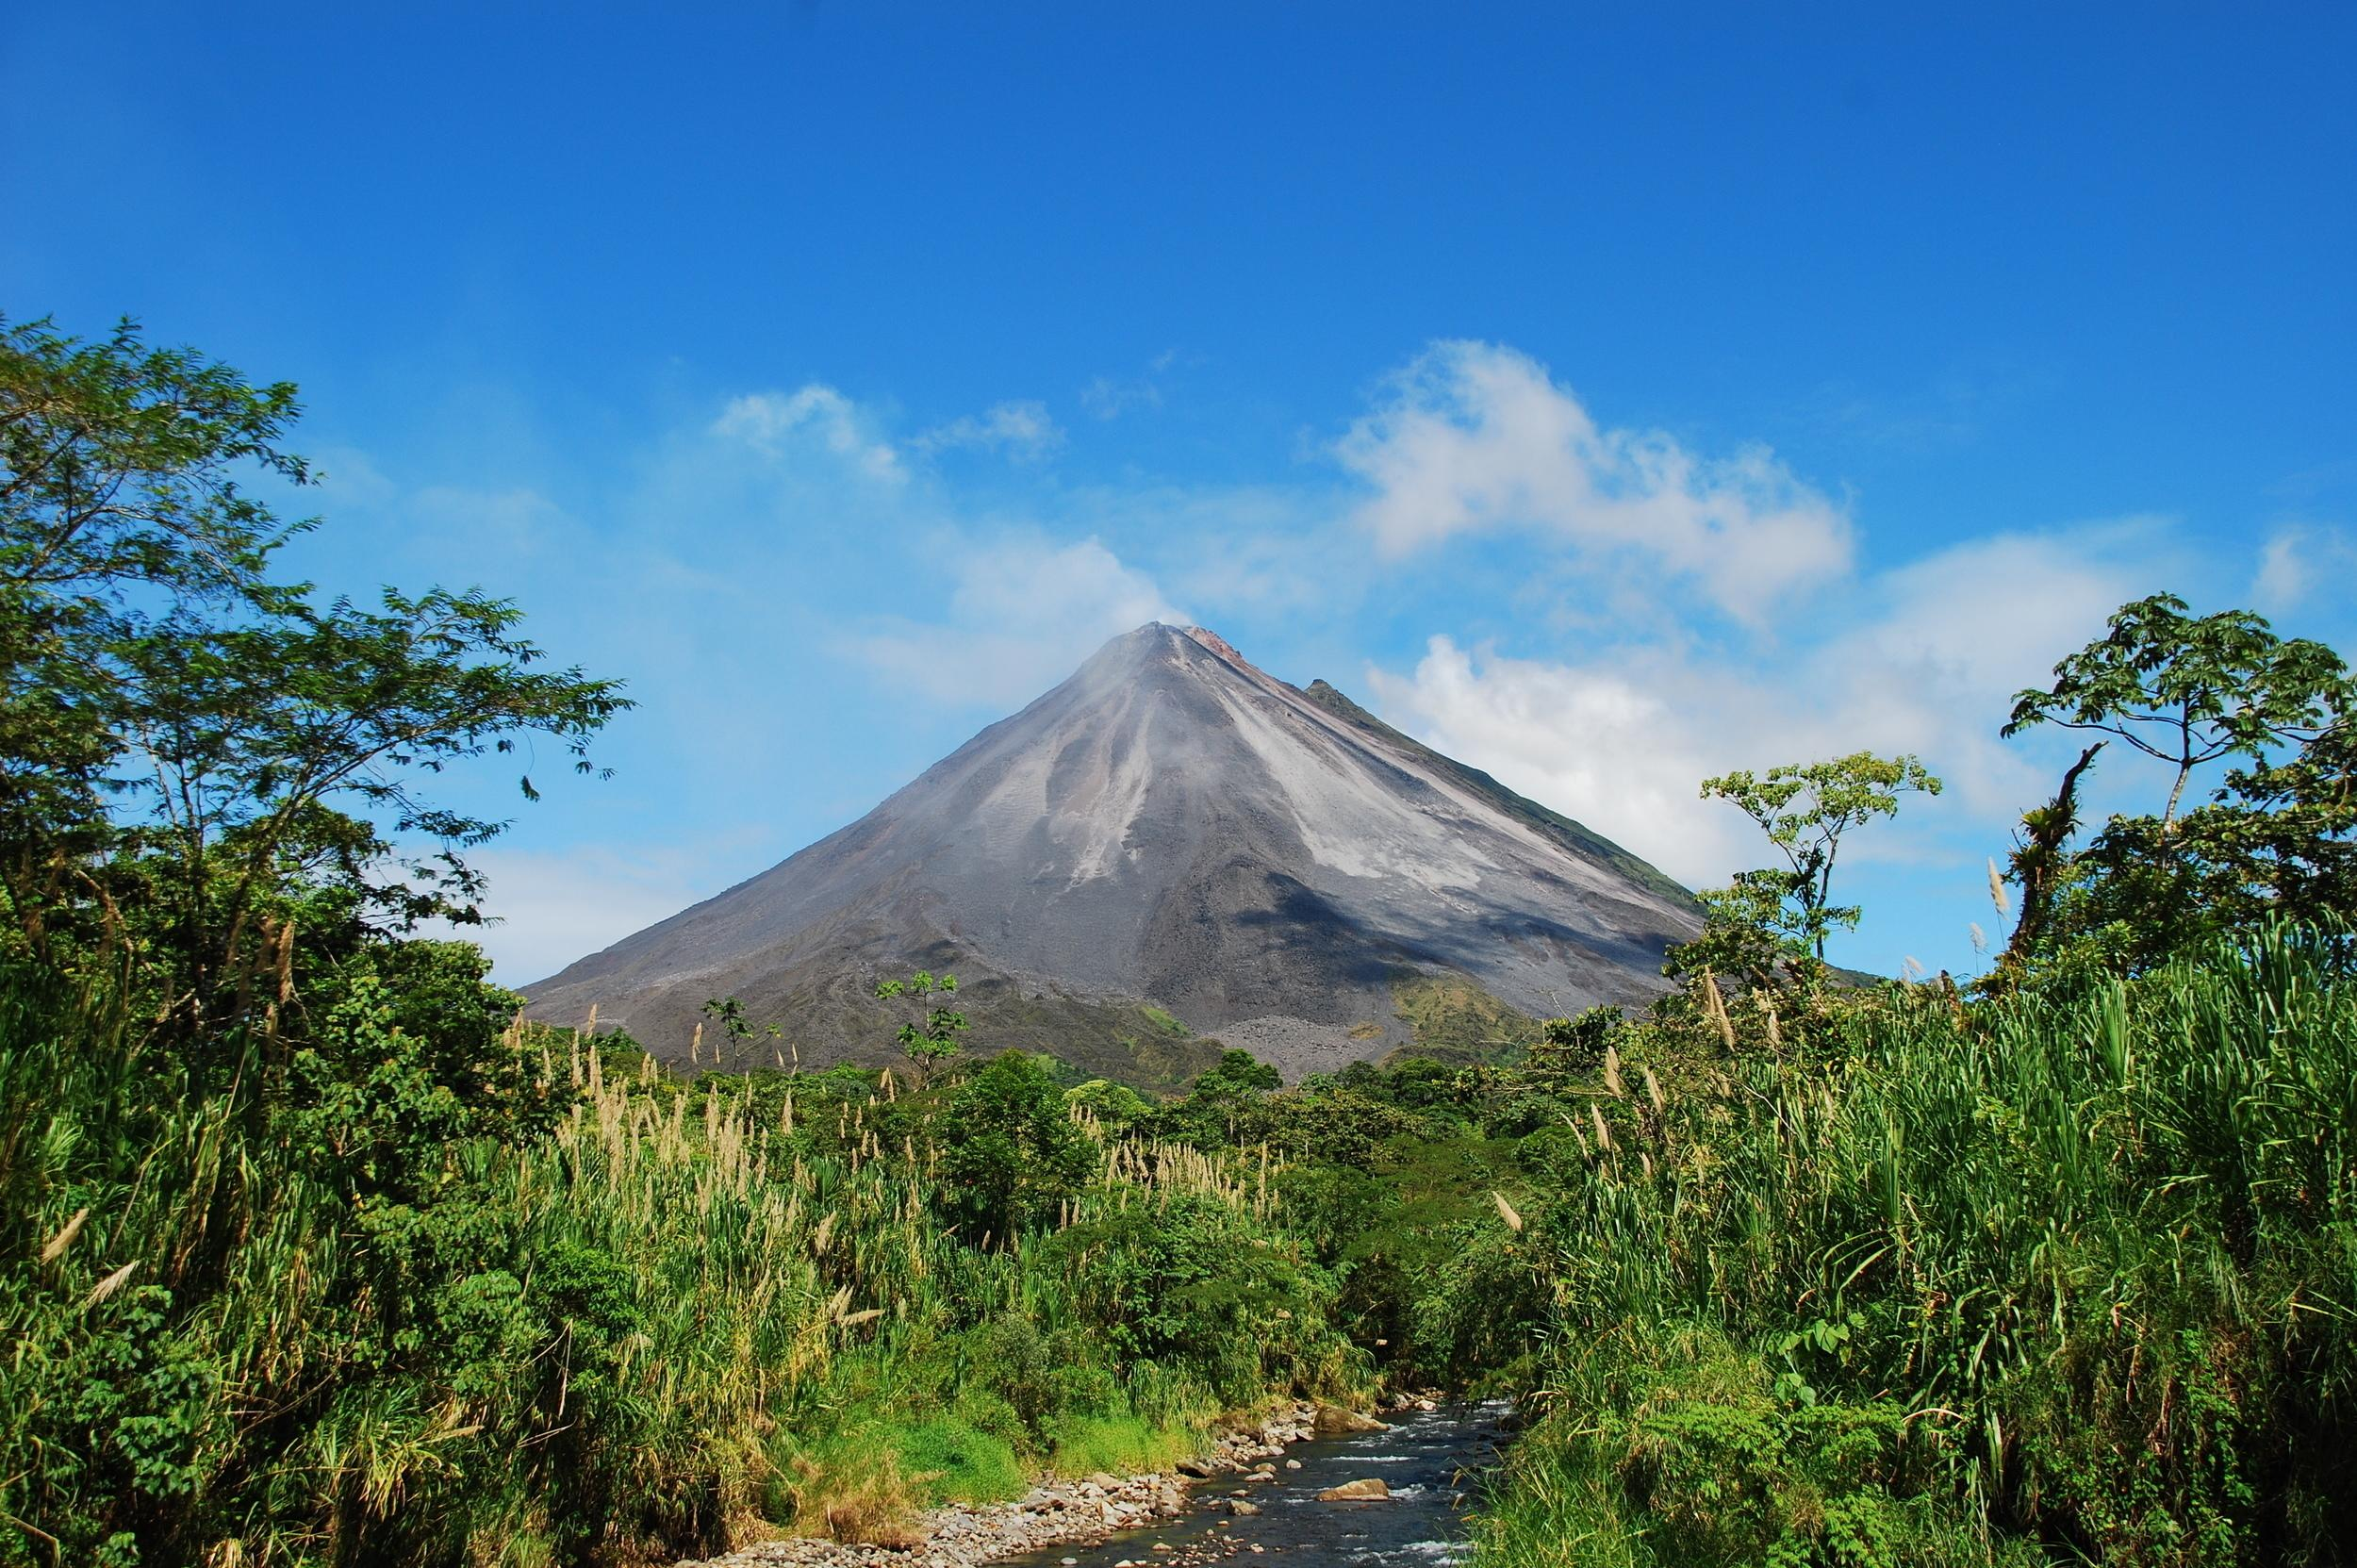 """<p>While you can only marvel at the Arenal Volcano from afar, this remarkable site is a must-see for everyone - from adventure seekers to spa lovers. At the29,692-acre Arenal Volcano National Park, you can hike the area, relax in a hot spring and spot howler monkeys, parrots and tapir.<br /> <br /> <strong>Try:</strong> Hayes & Jarvis' <a href=""""http://www.hayesandjarvis.co.uk/holidays/costa-rica/tours/arenalvolcanoandmonteverdecloudforest"""" target=""""_blank"""">Arenal Volcano and Monteverde Cloud Forest</a> tour</p>"""